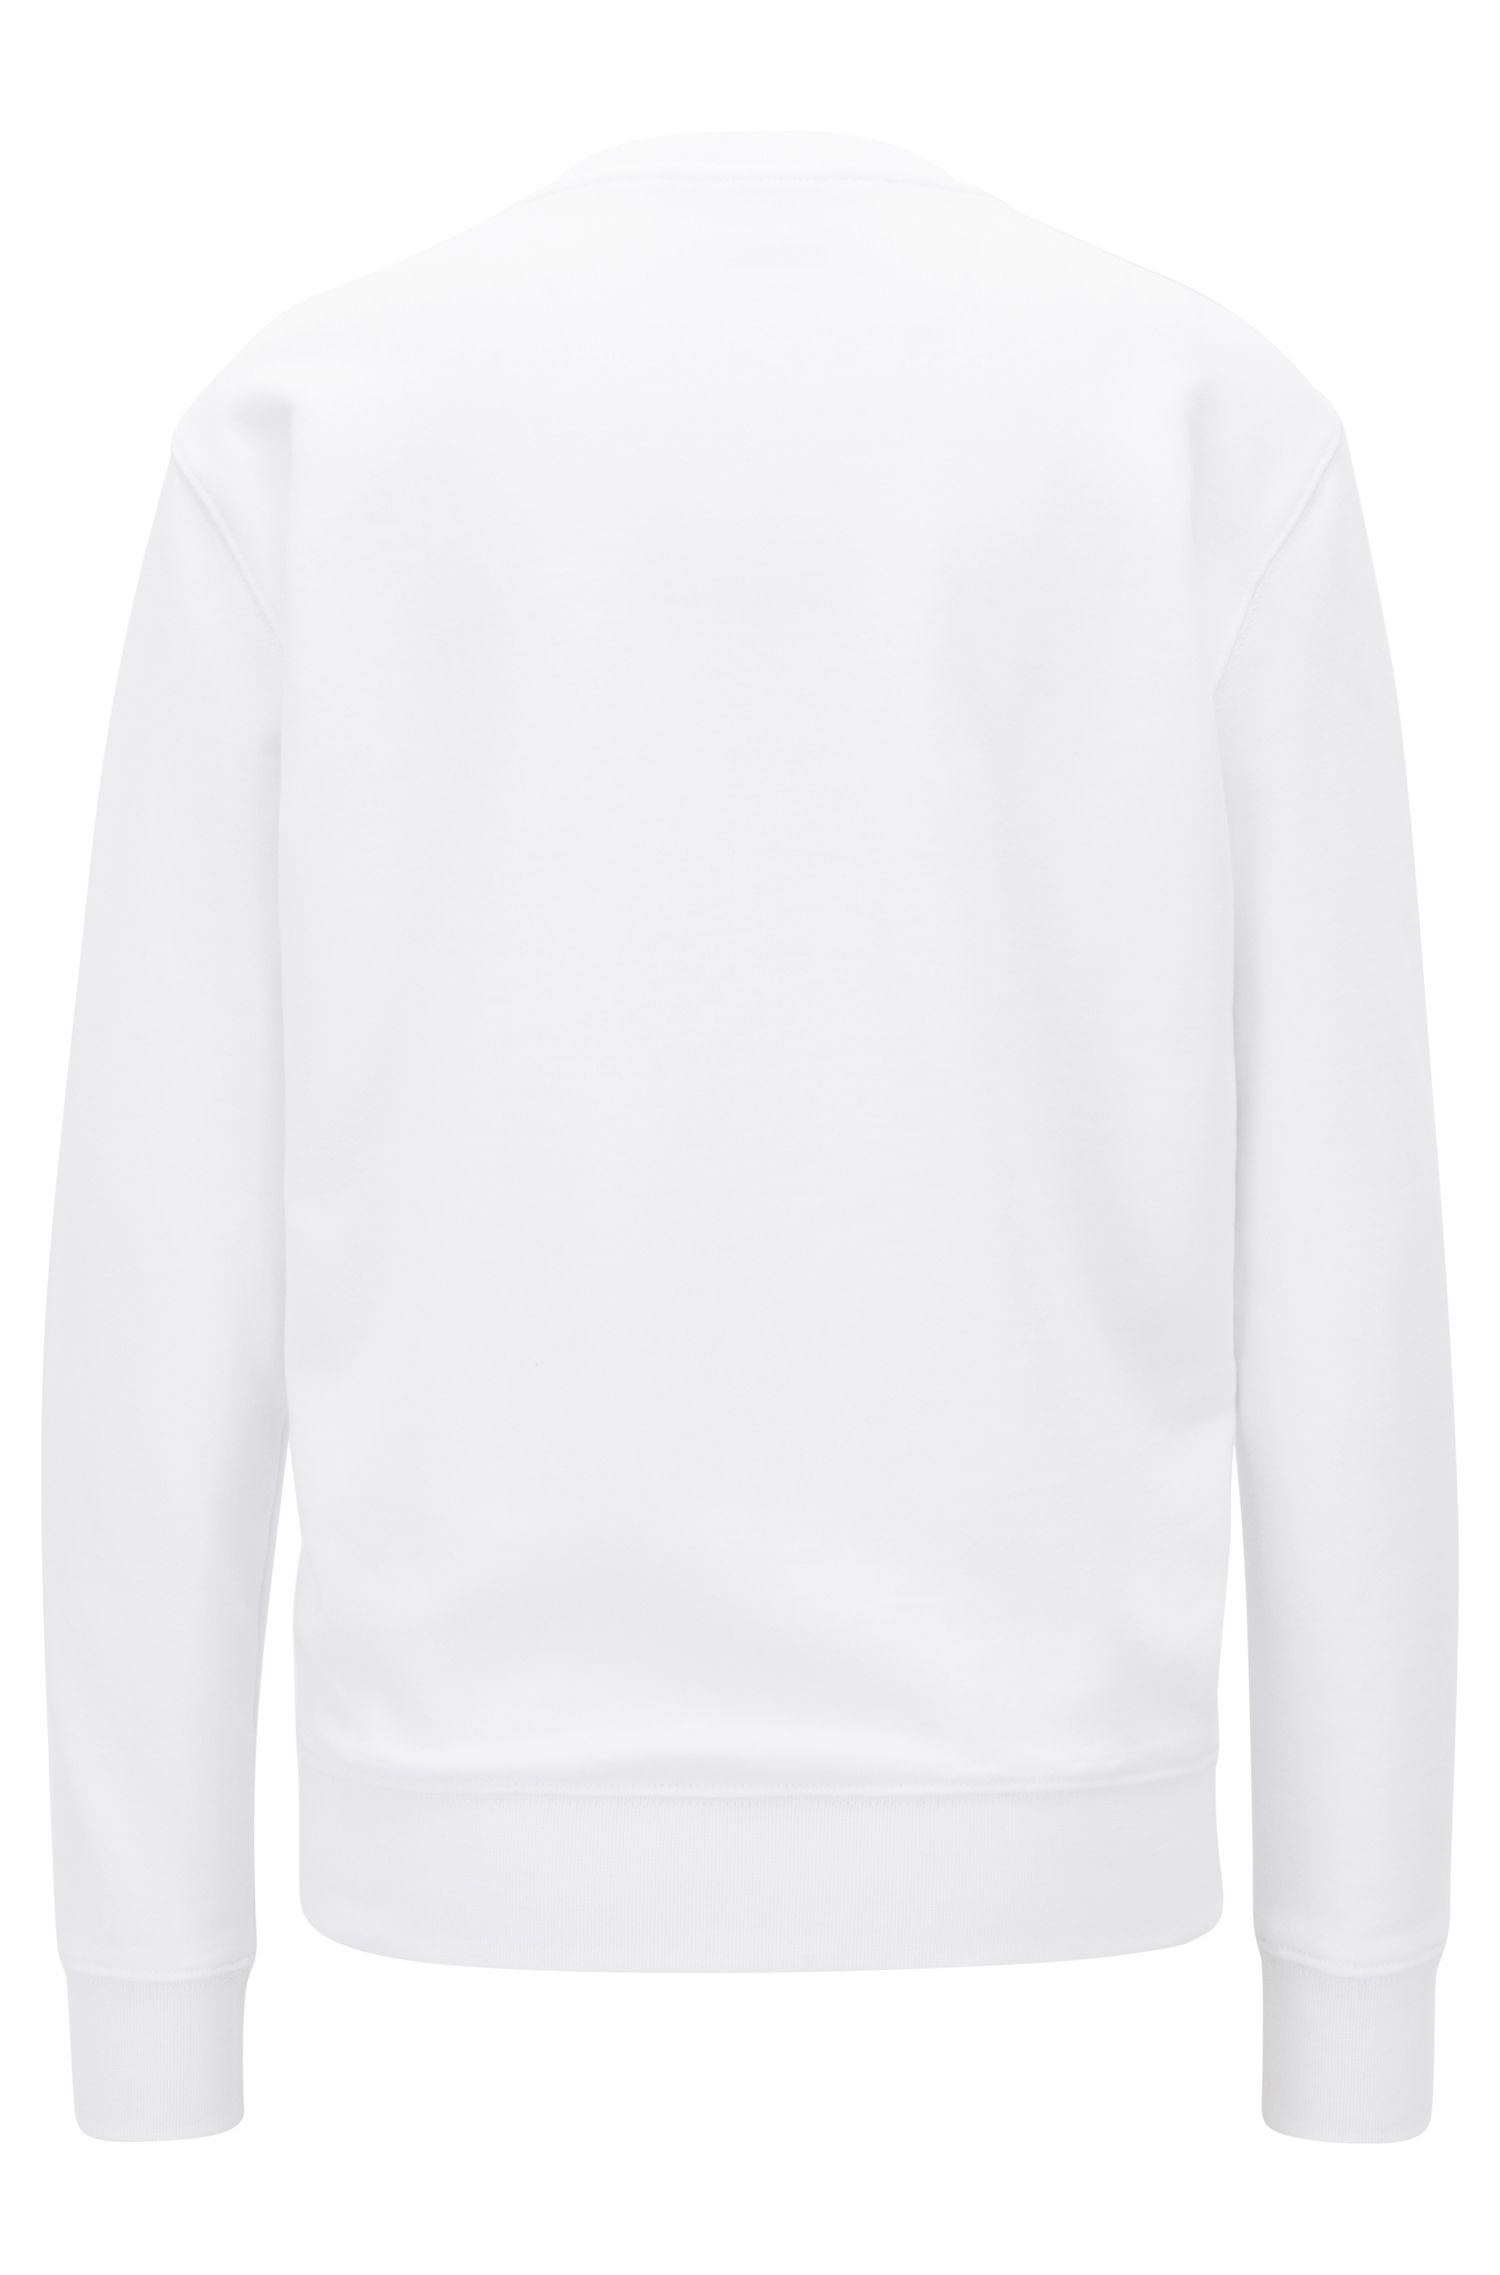 Sweatshirt aus Baumwoll-Terry mit 3D-Logo in Metallic-Optik, Weiß